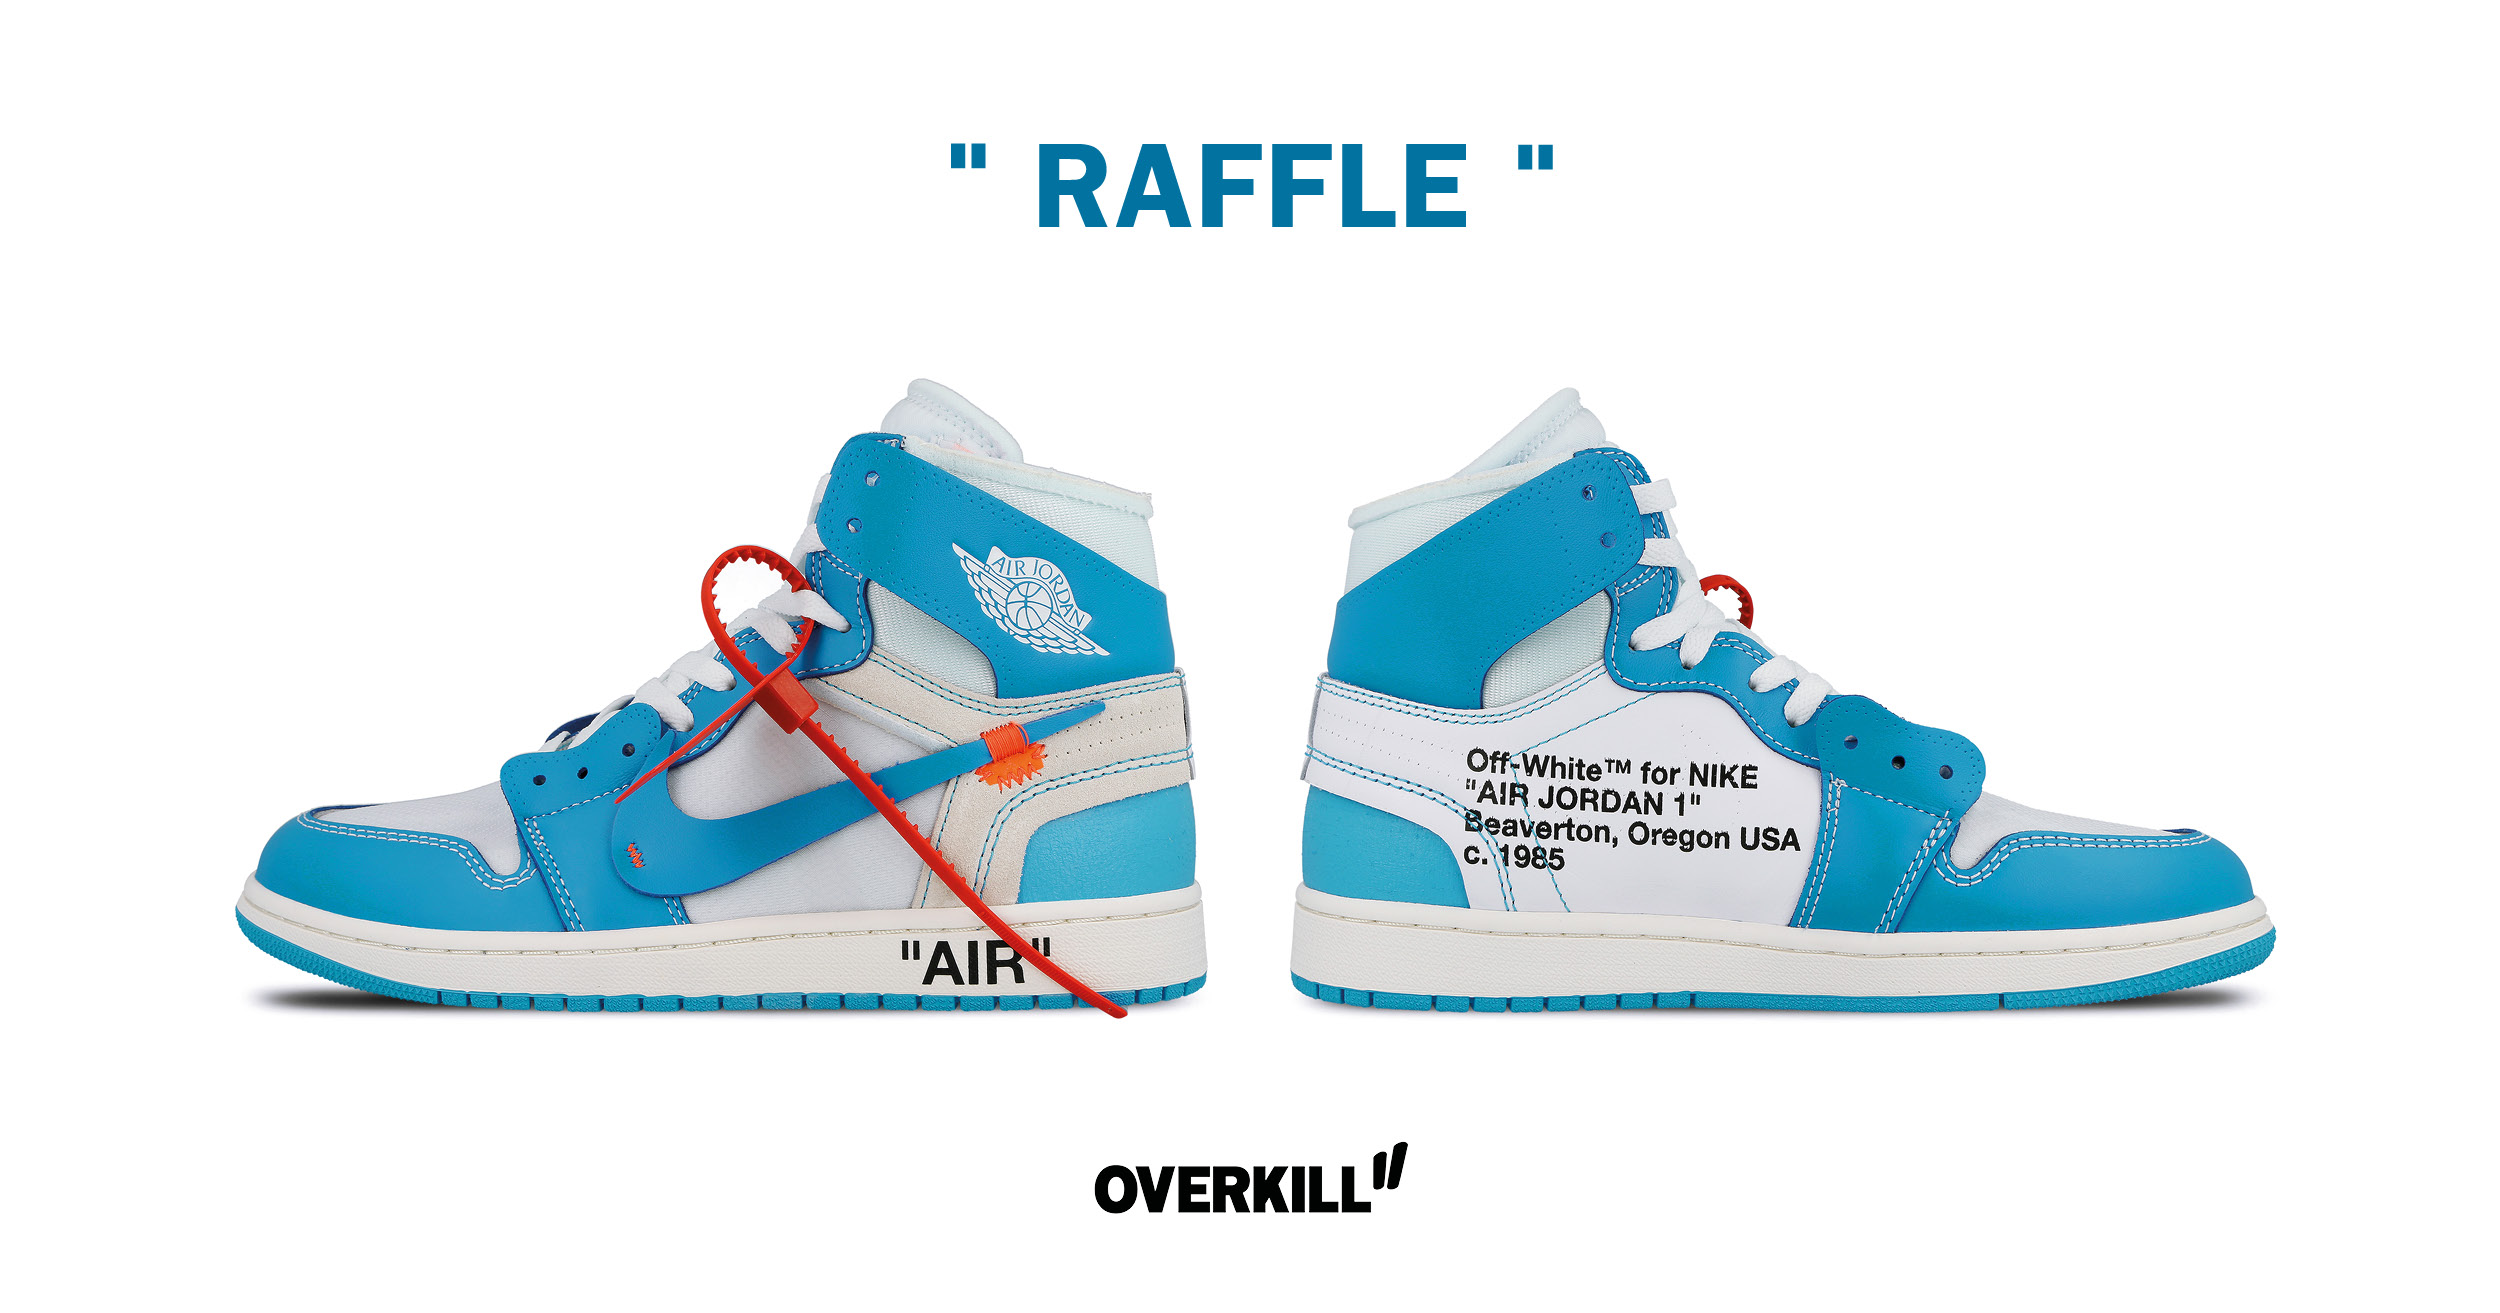 competitive price 4ddc0 54936 DONE: Nike x OFF-White Air Jordan 1 POWDER BLUE